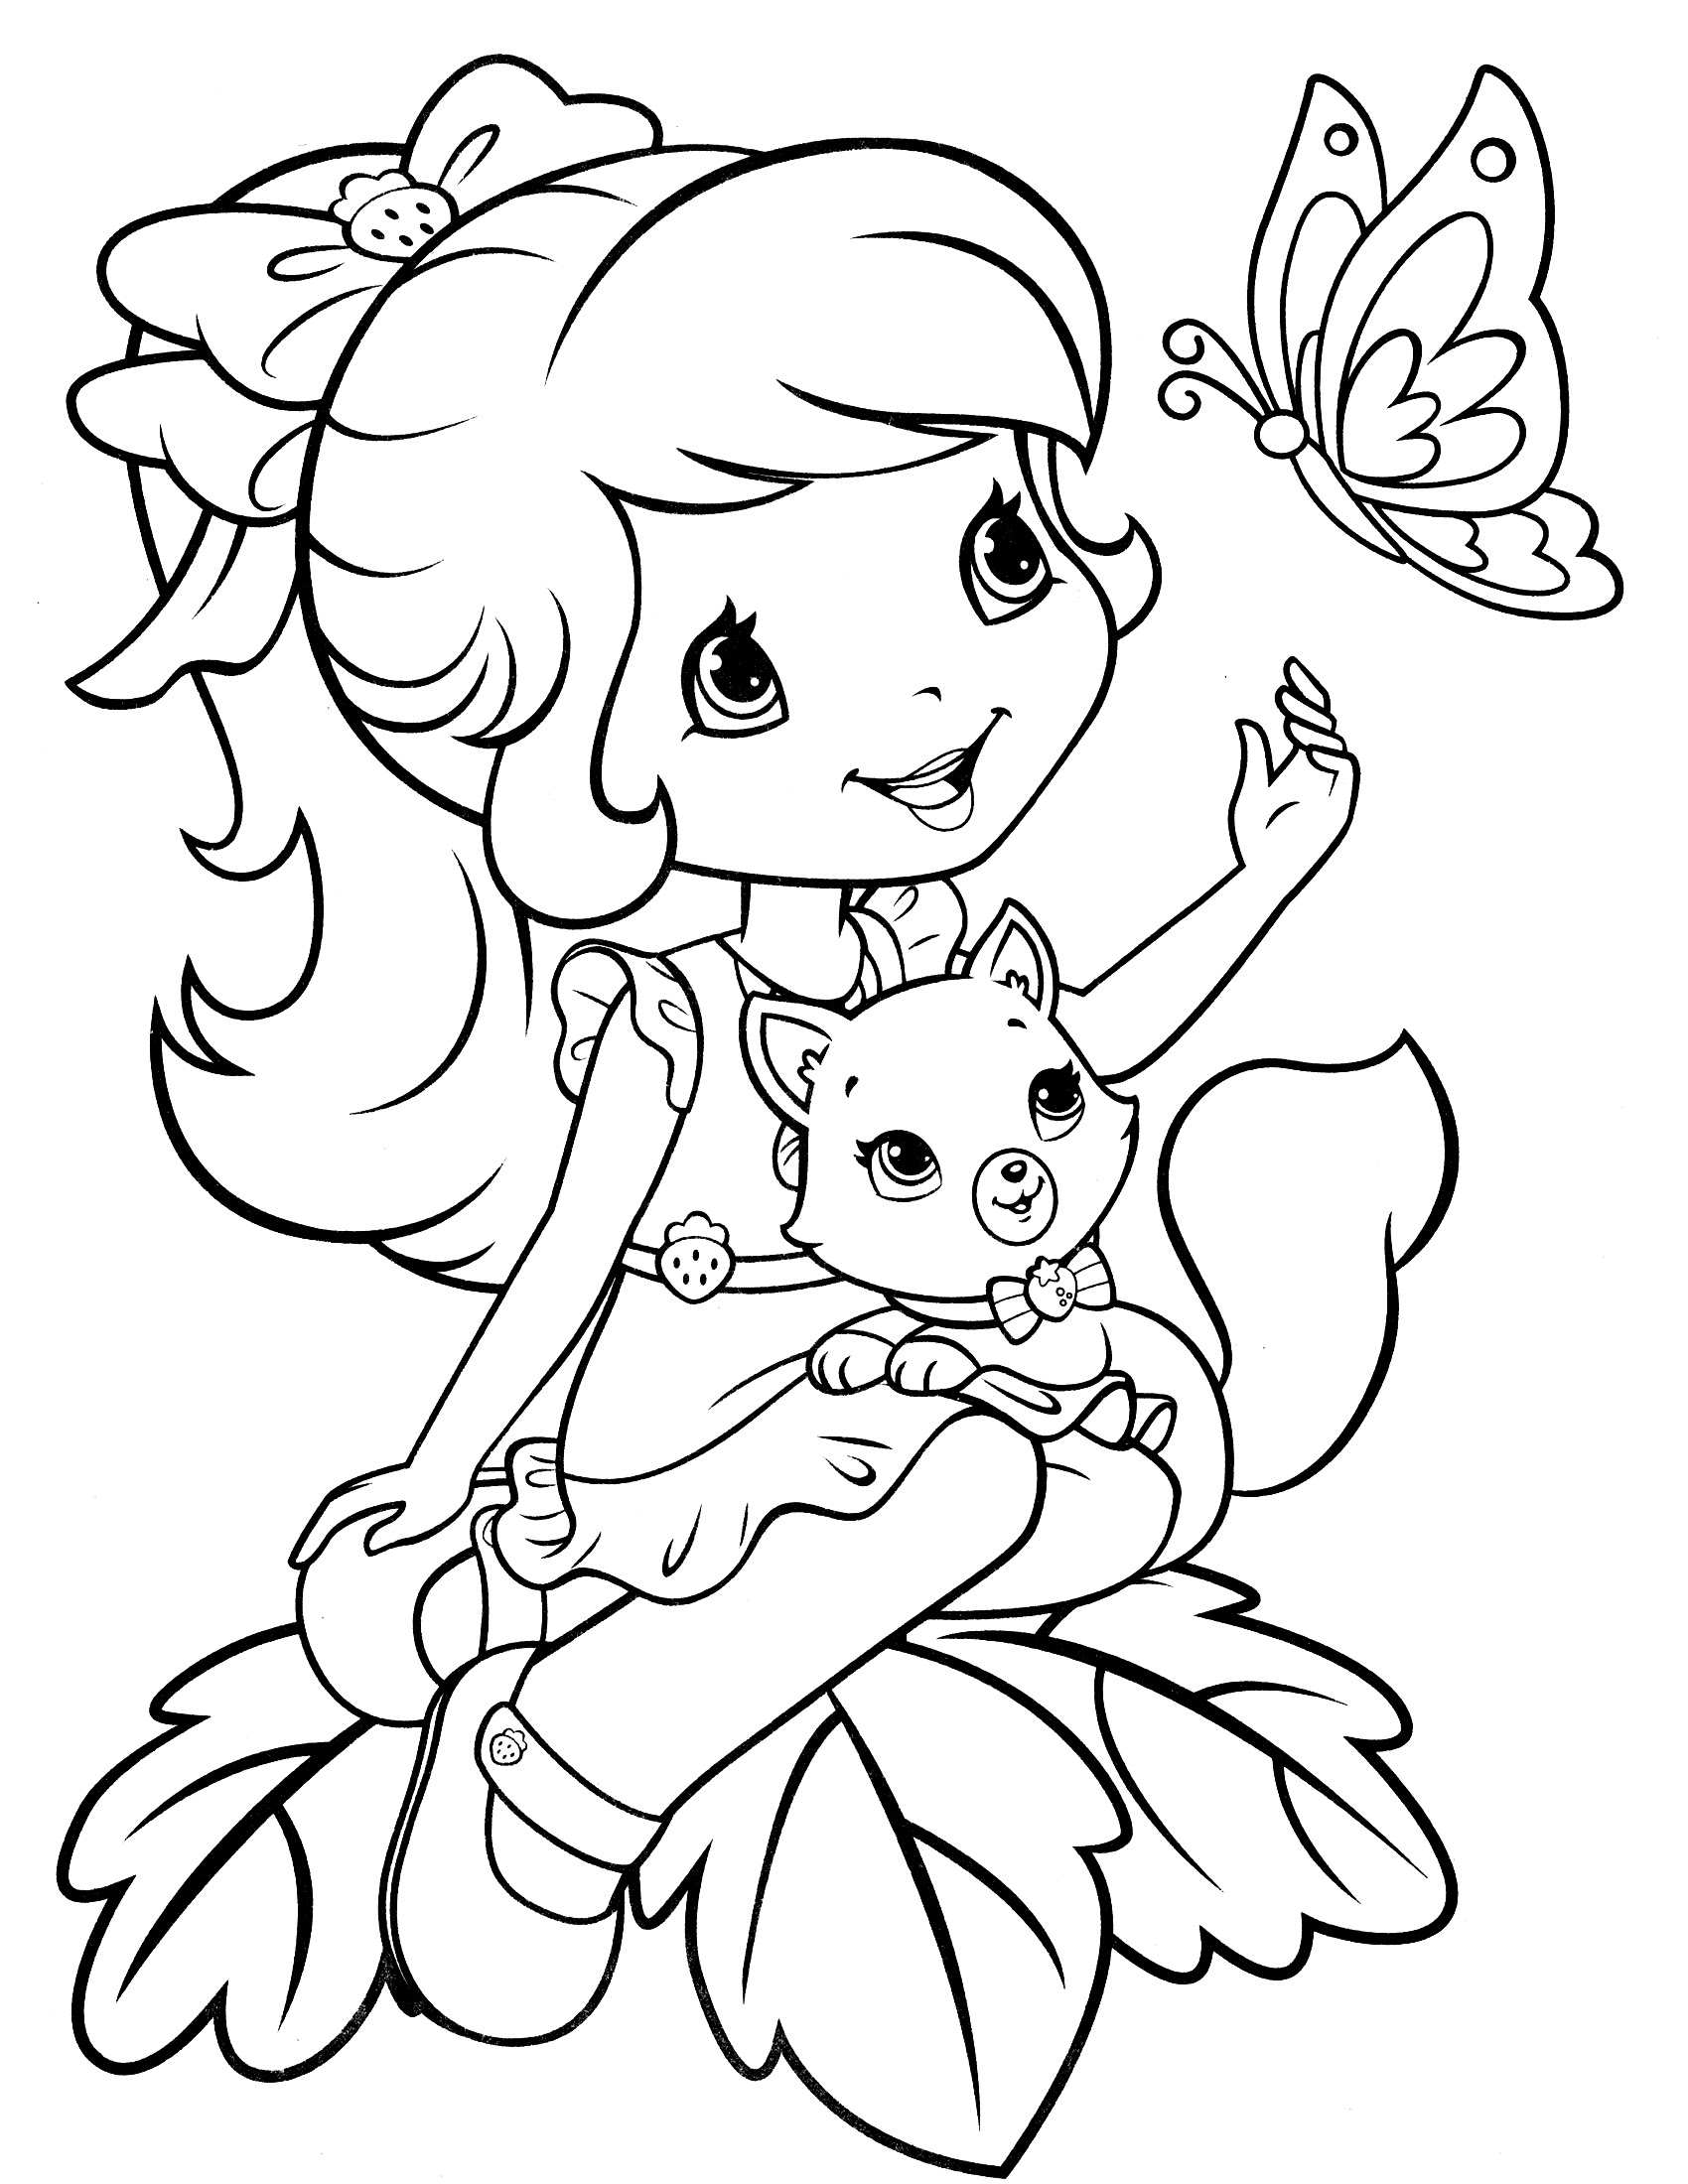 Strawberry Shortcake Coloring Pages Cool Coloring Pages 18 Free